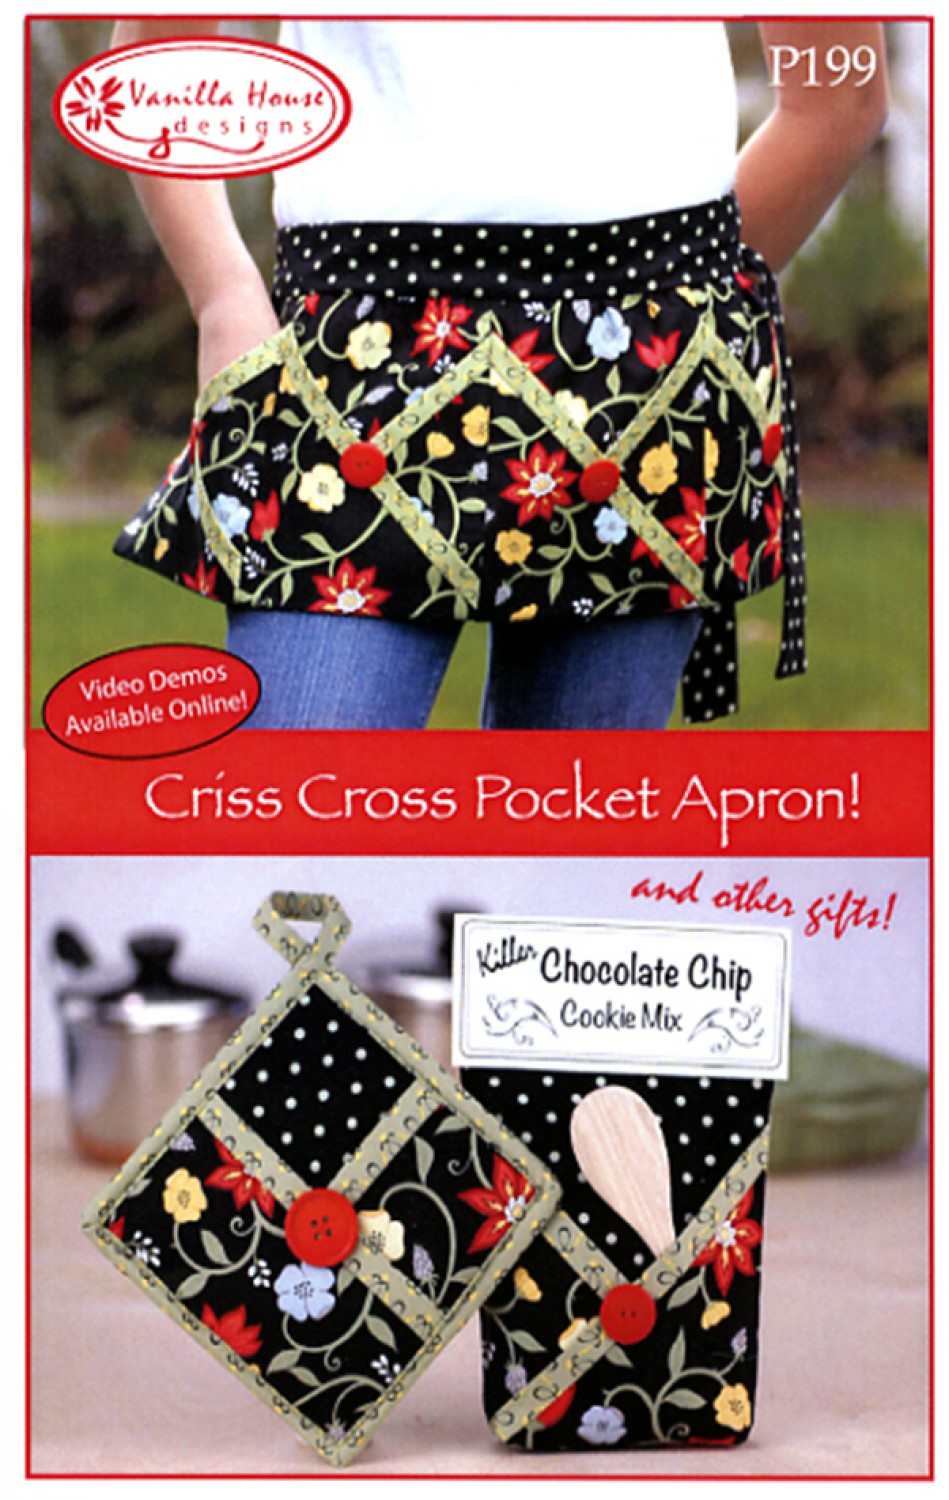 Criss Cross Pocket Apron and Gifts